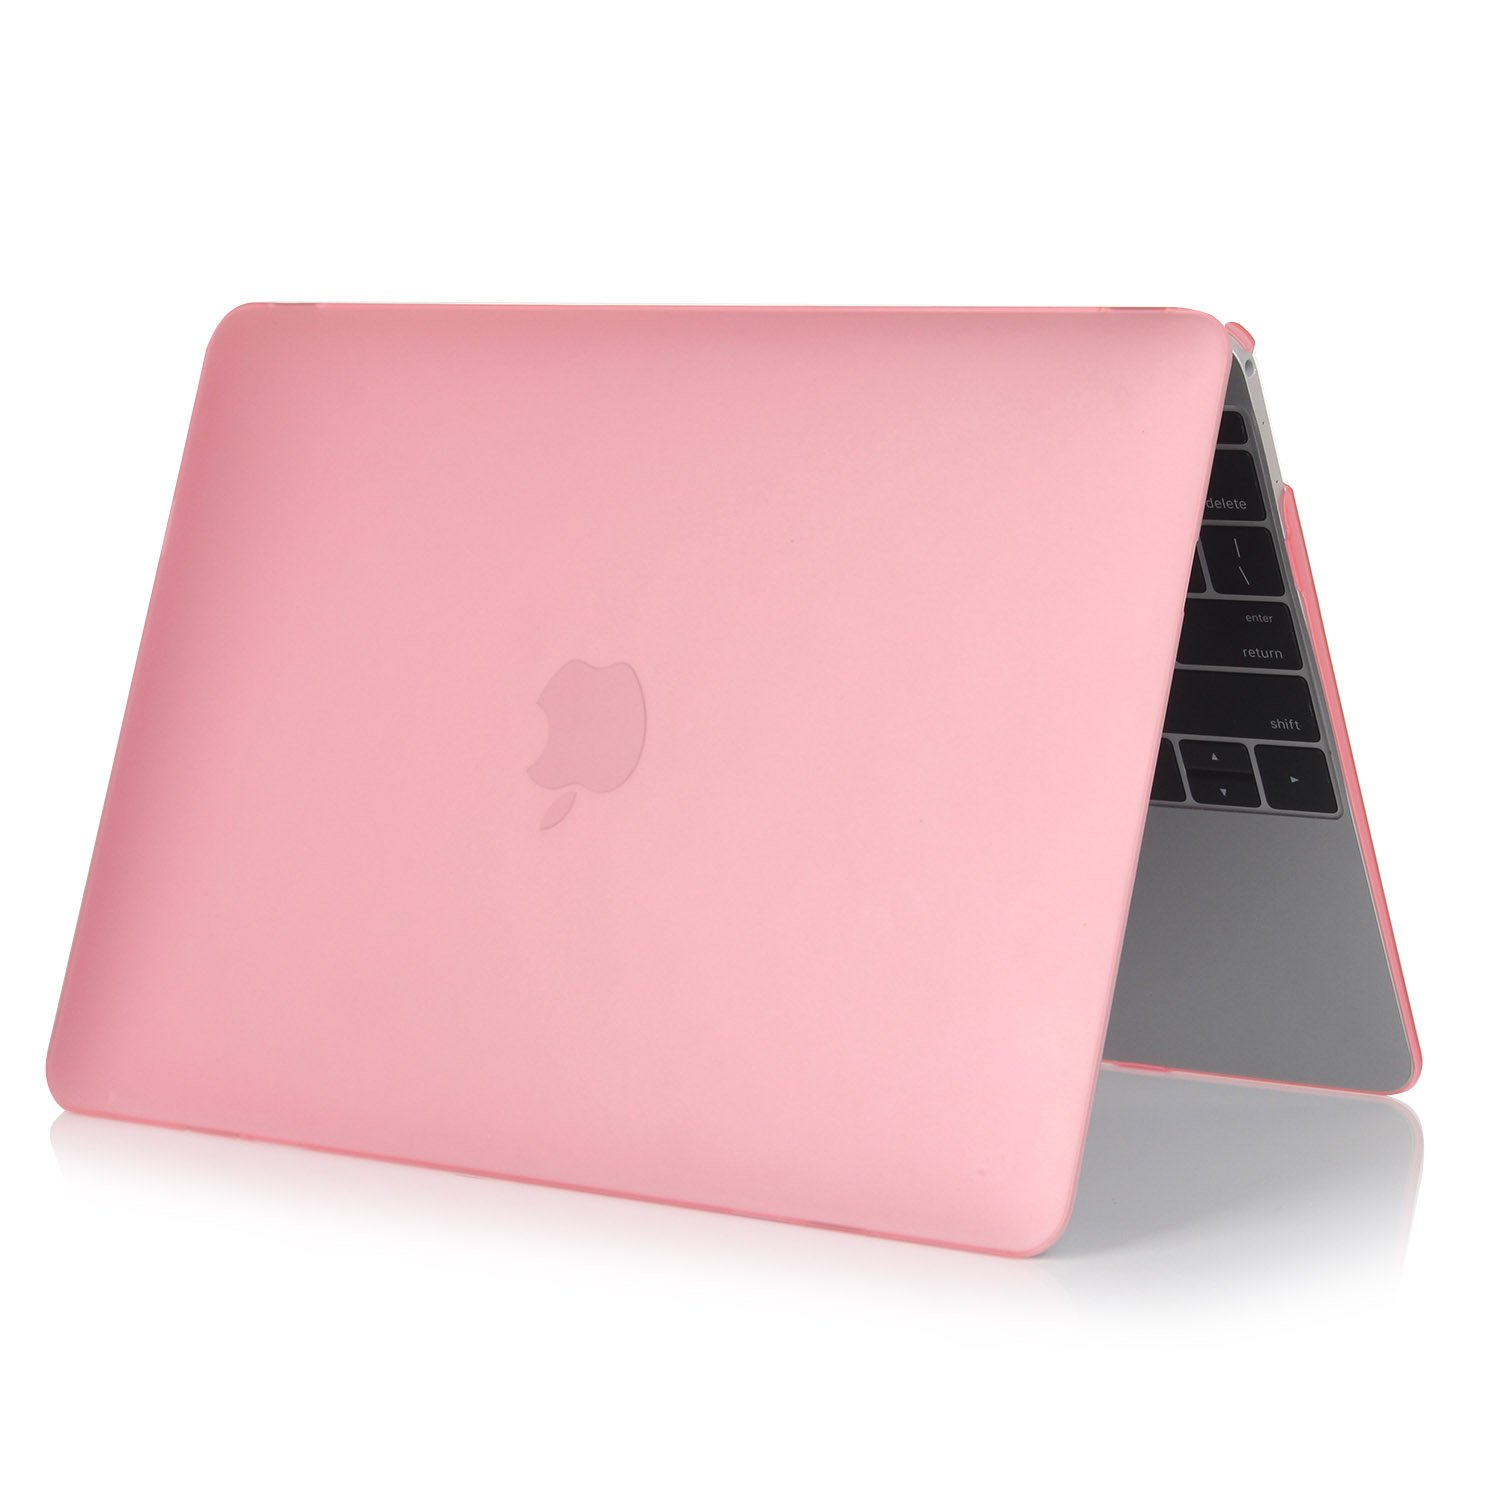 "13.3"" MOSISO PINK Matte Case for MacBook Air Laptop 9 COLORS FAST FREE SHIPPING USA"